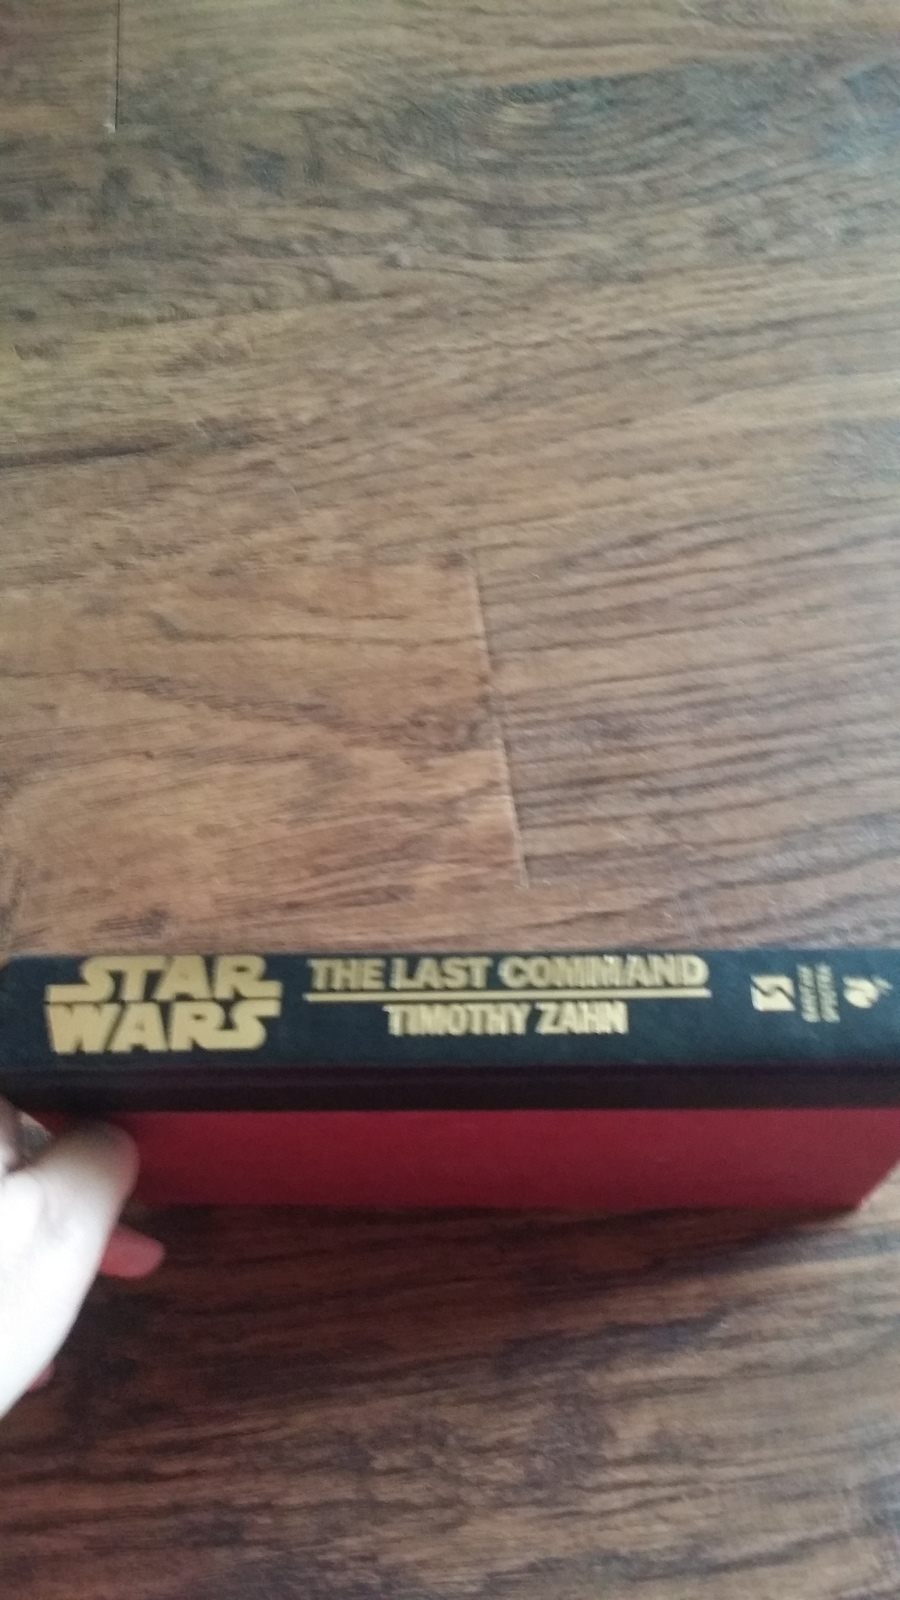 Star Wars The Last Command Vol 3 by Timothy Zahn (1993 Hardcover)